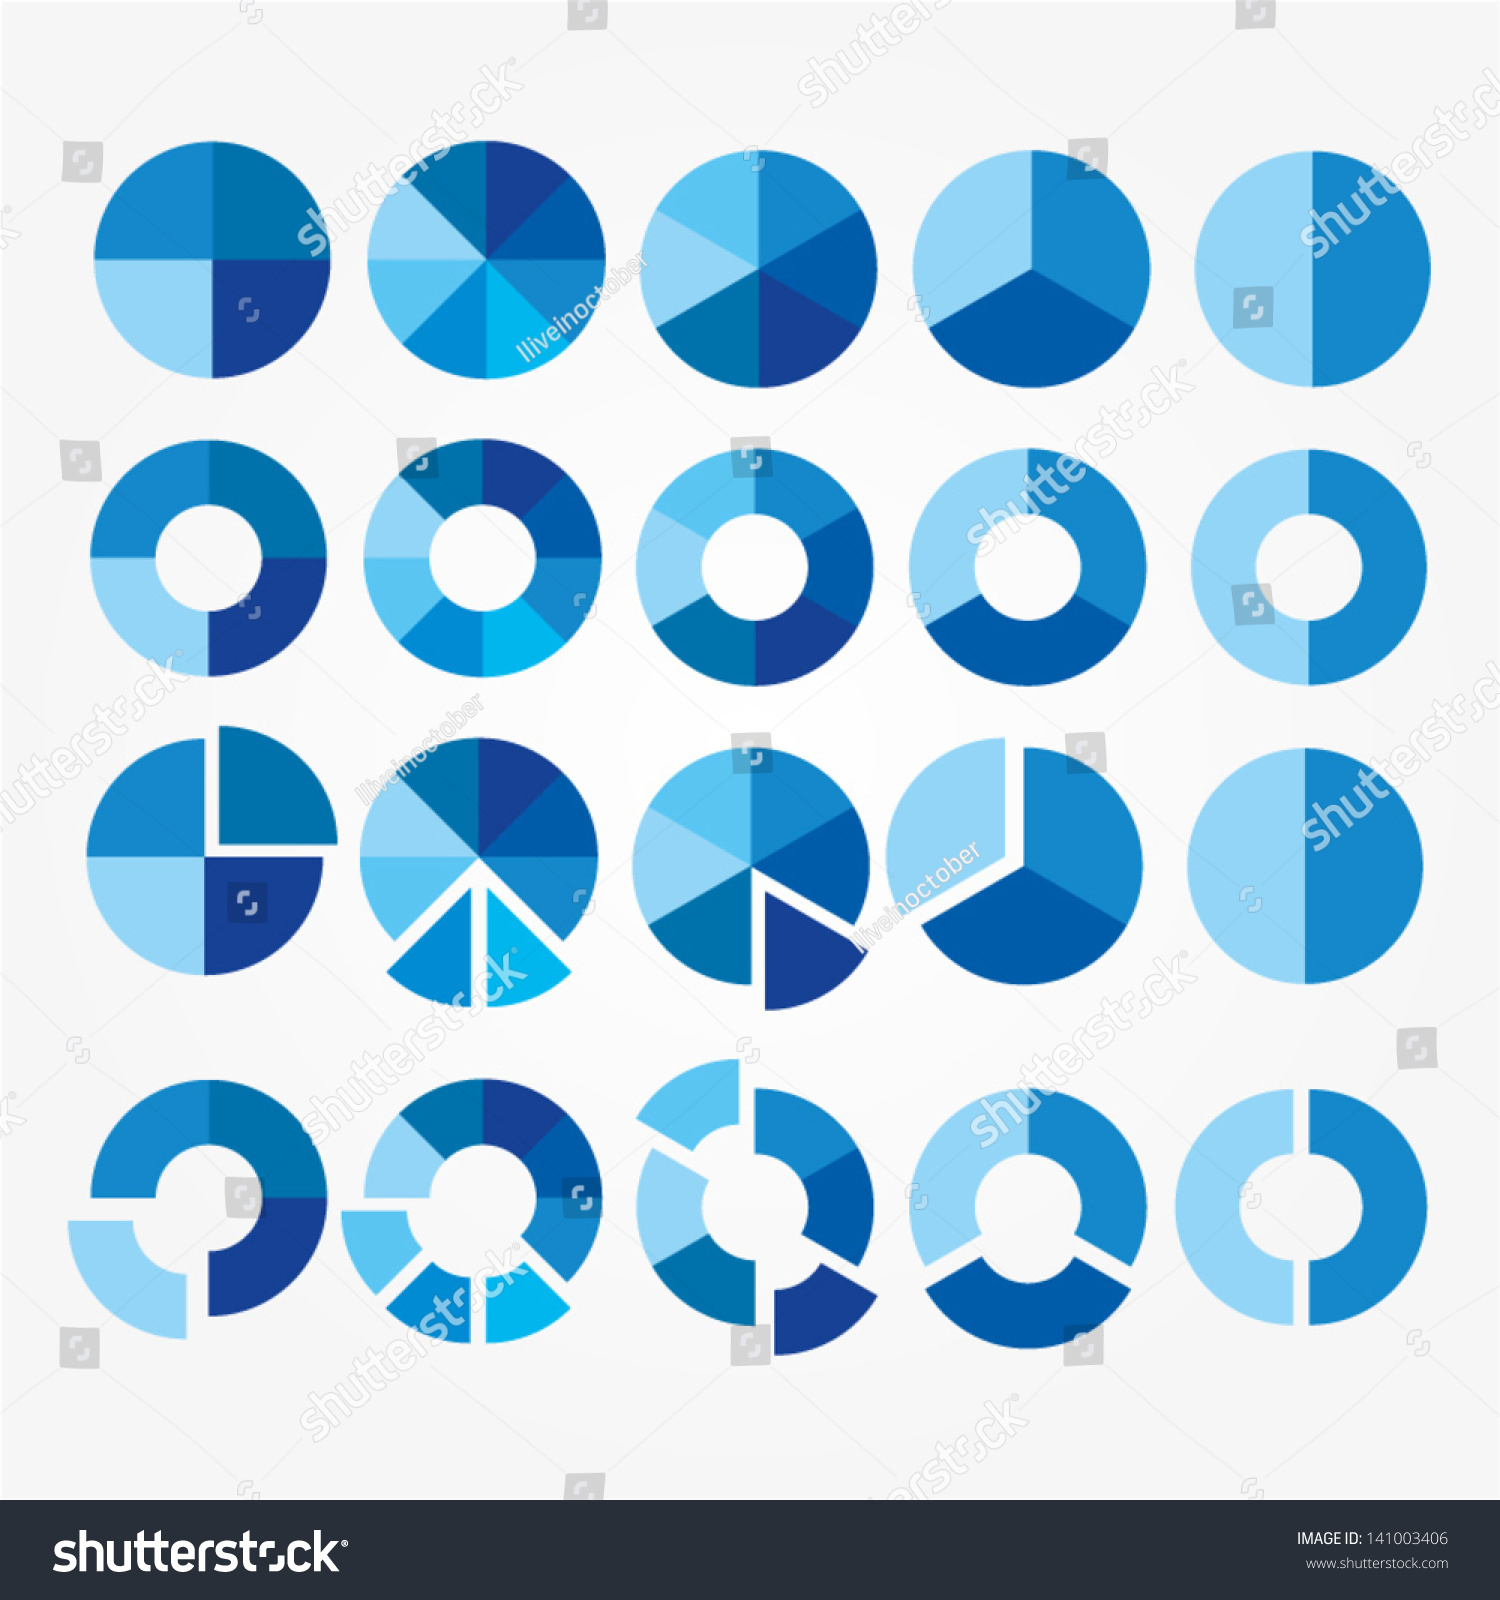 Set Blue White Circle Diagram Your Stock Vector (Royalty Free ...